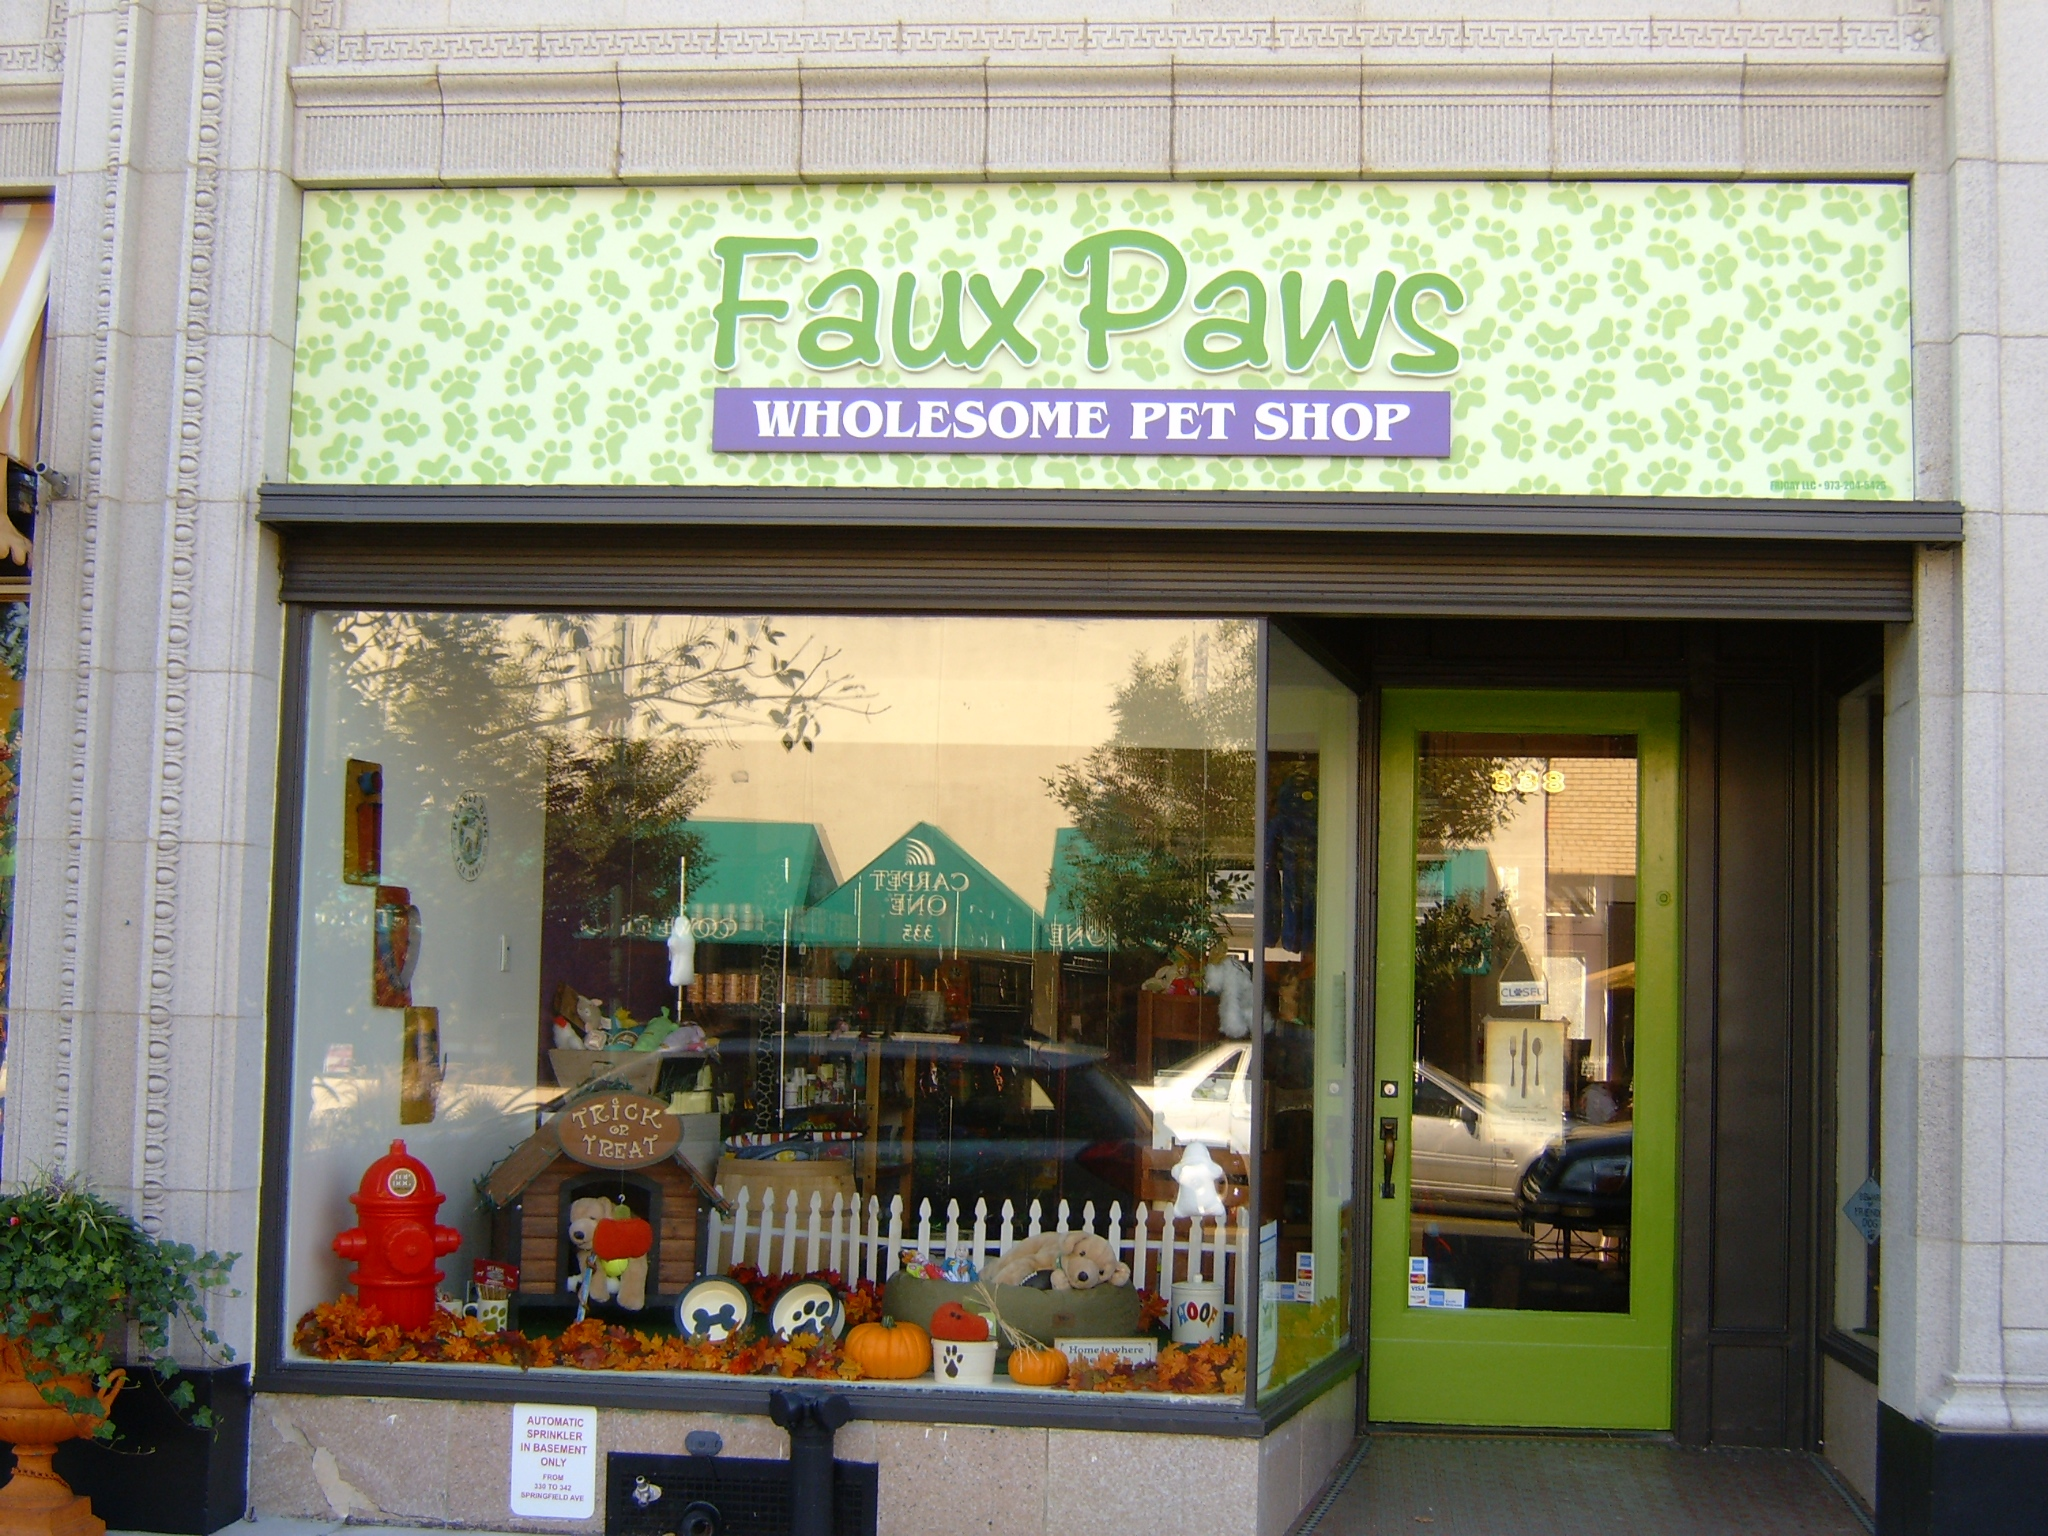 Faux Paws: A New Pet Store Concept Opens in Summit « theSummitzone